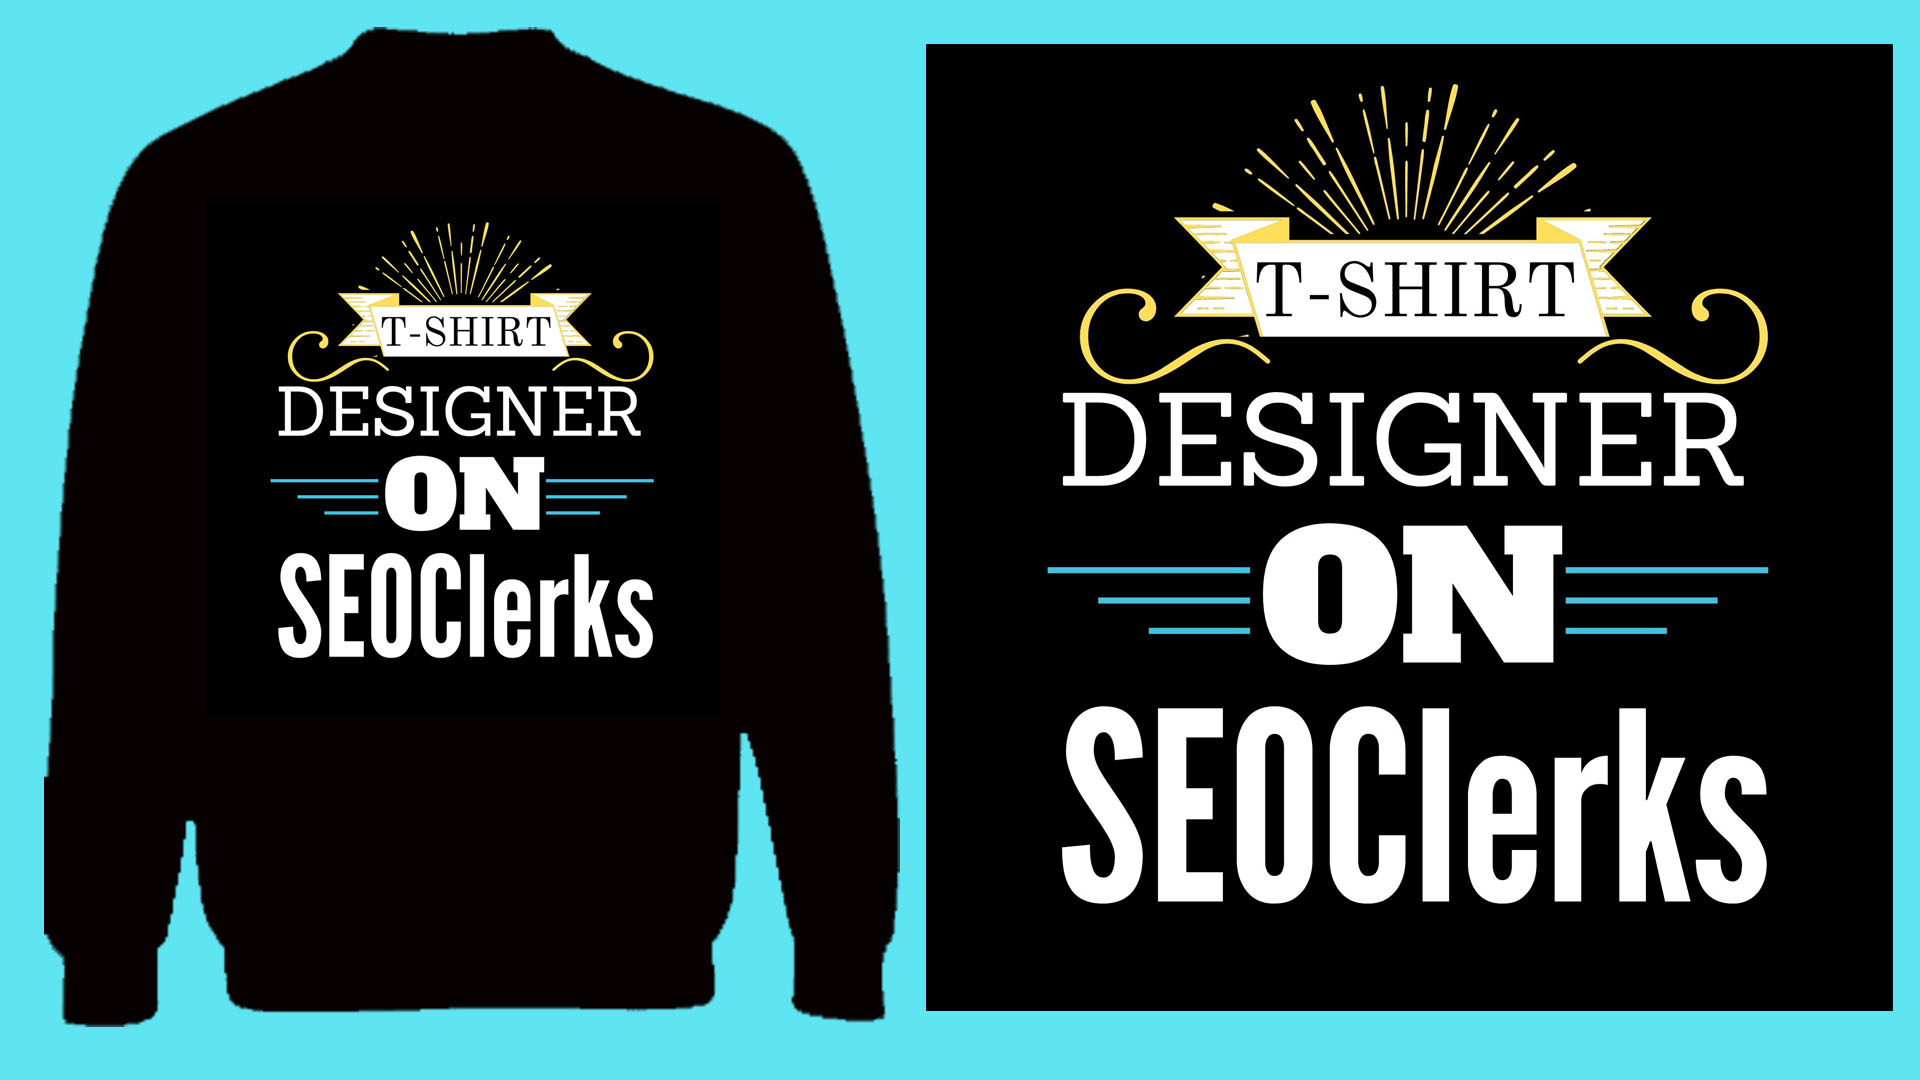 I Will Make A Professional T-Shirt Design For Your Print-On-Demand Business